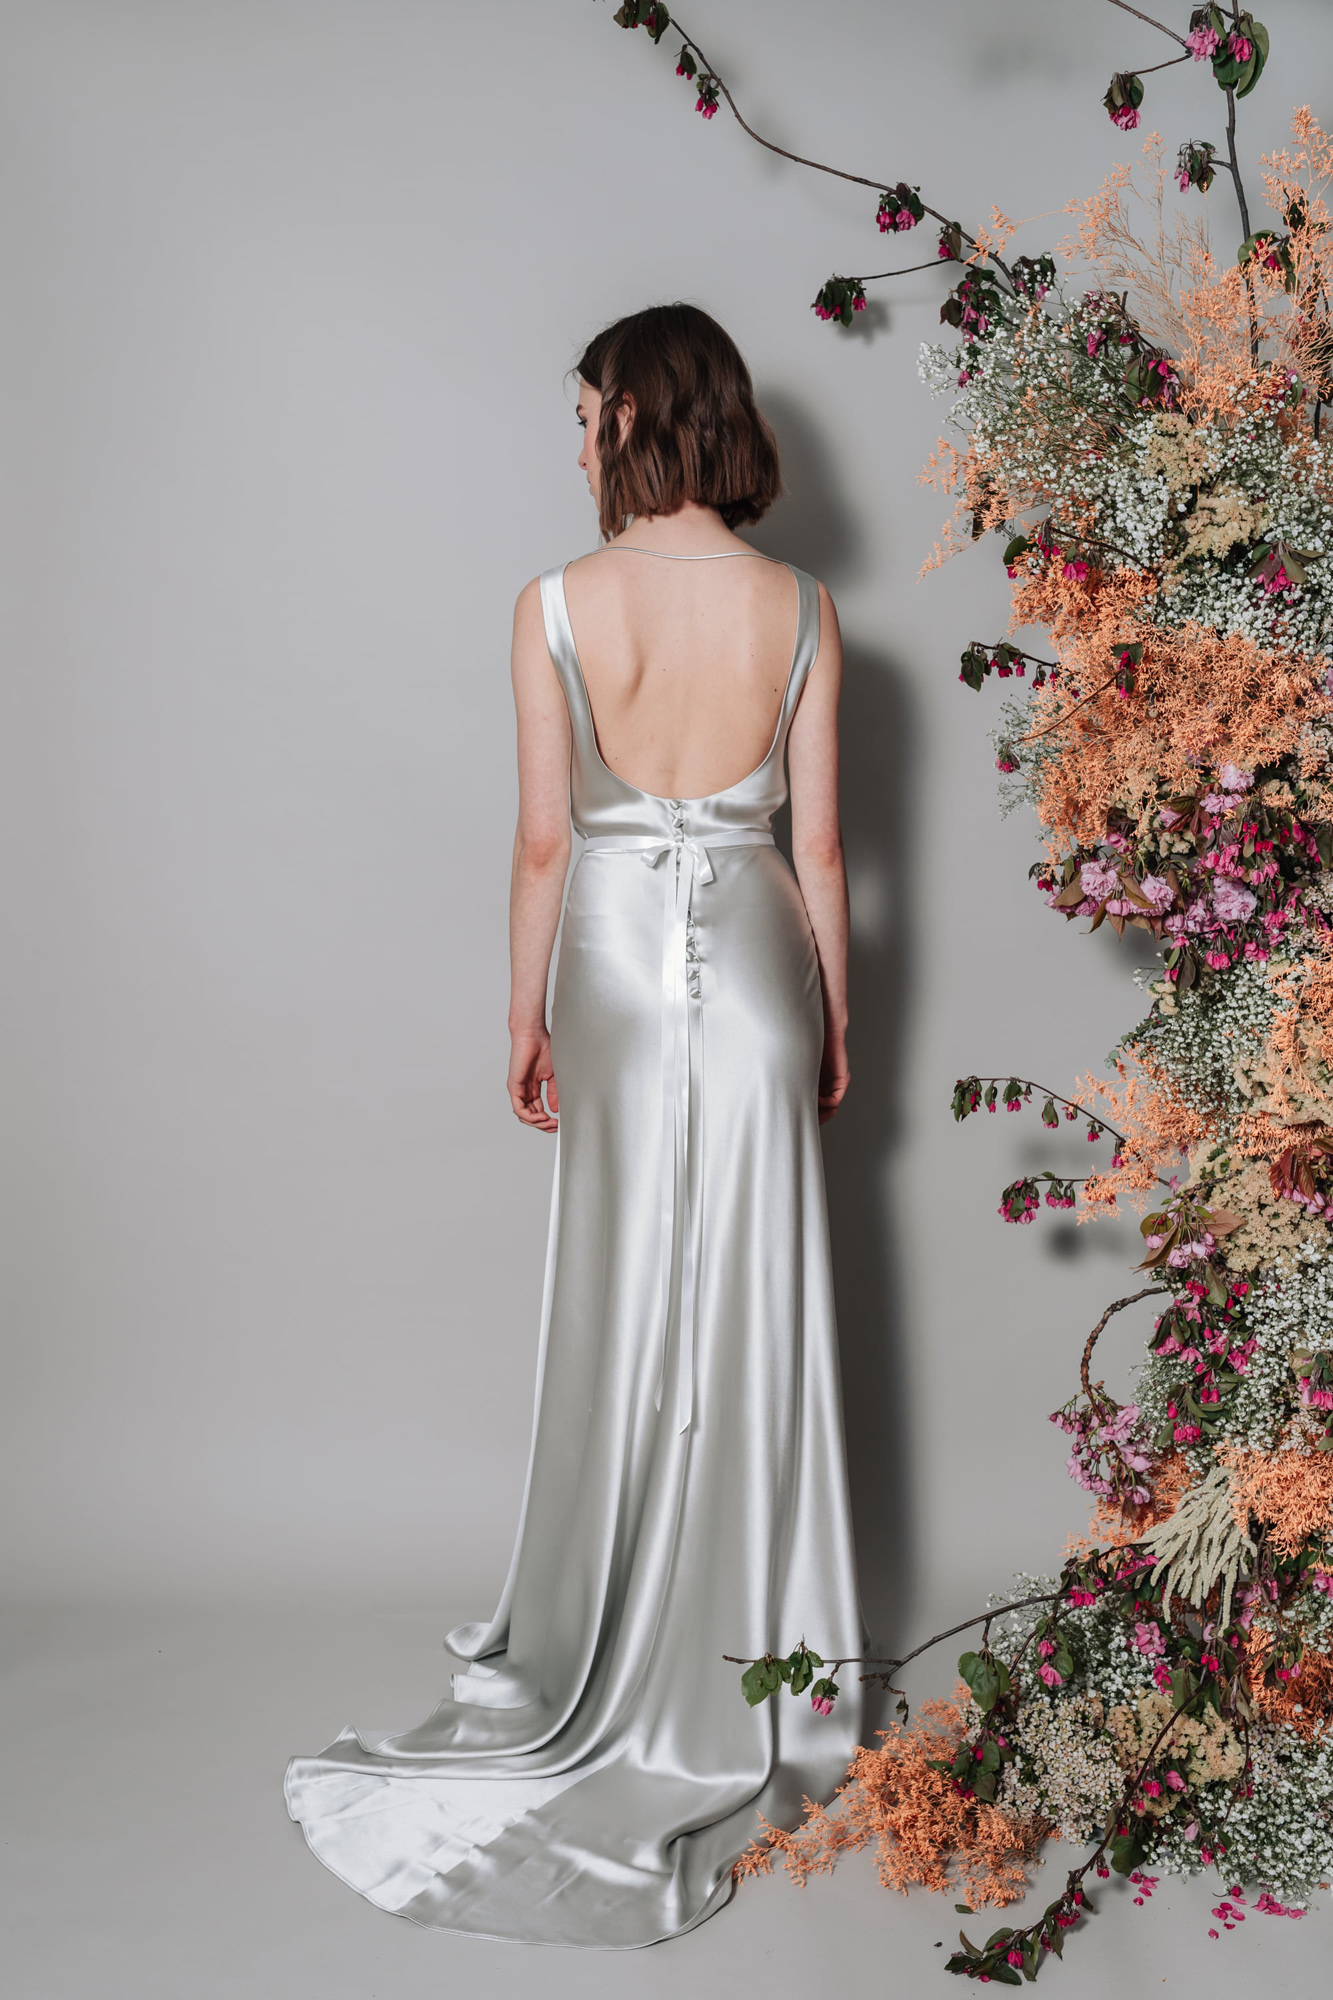 Kate-Beaumont-Sheffield-Sweet-Violet-Cowl-Neck-Bias-Cut-Silk-Wedding-Gown-9.jpg